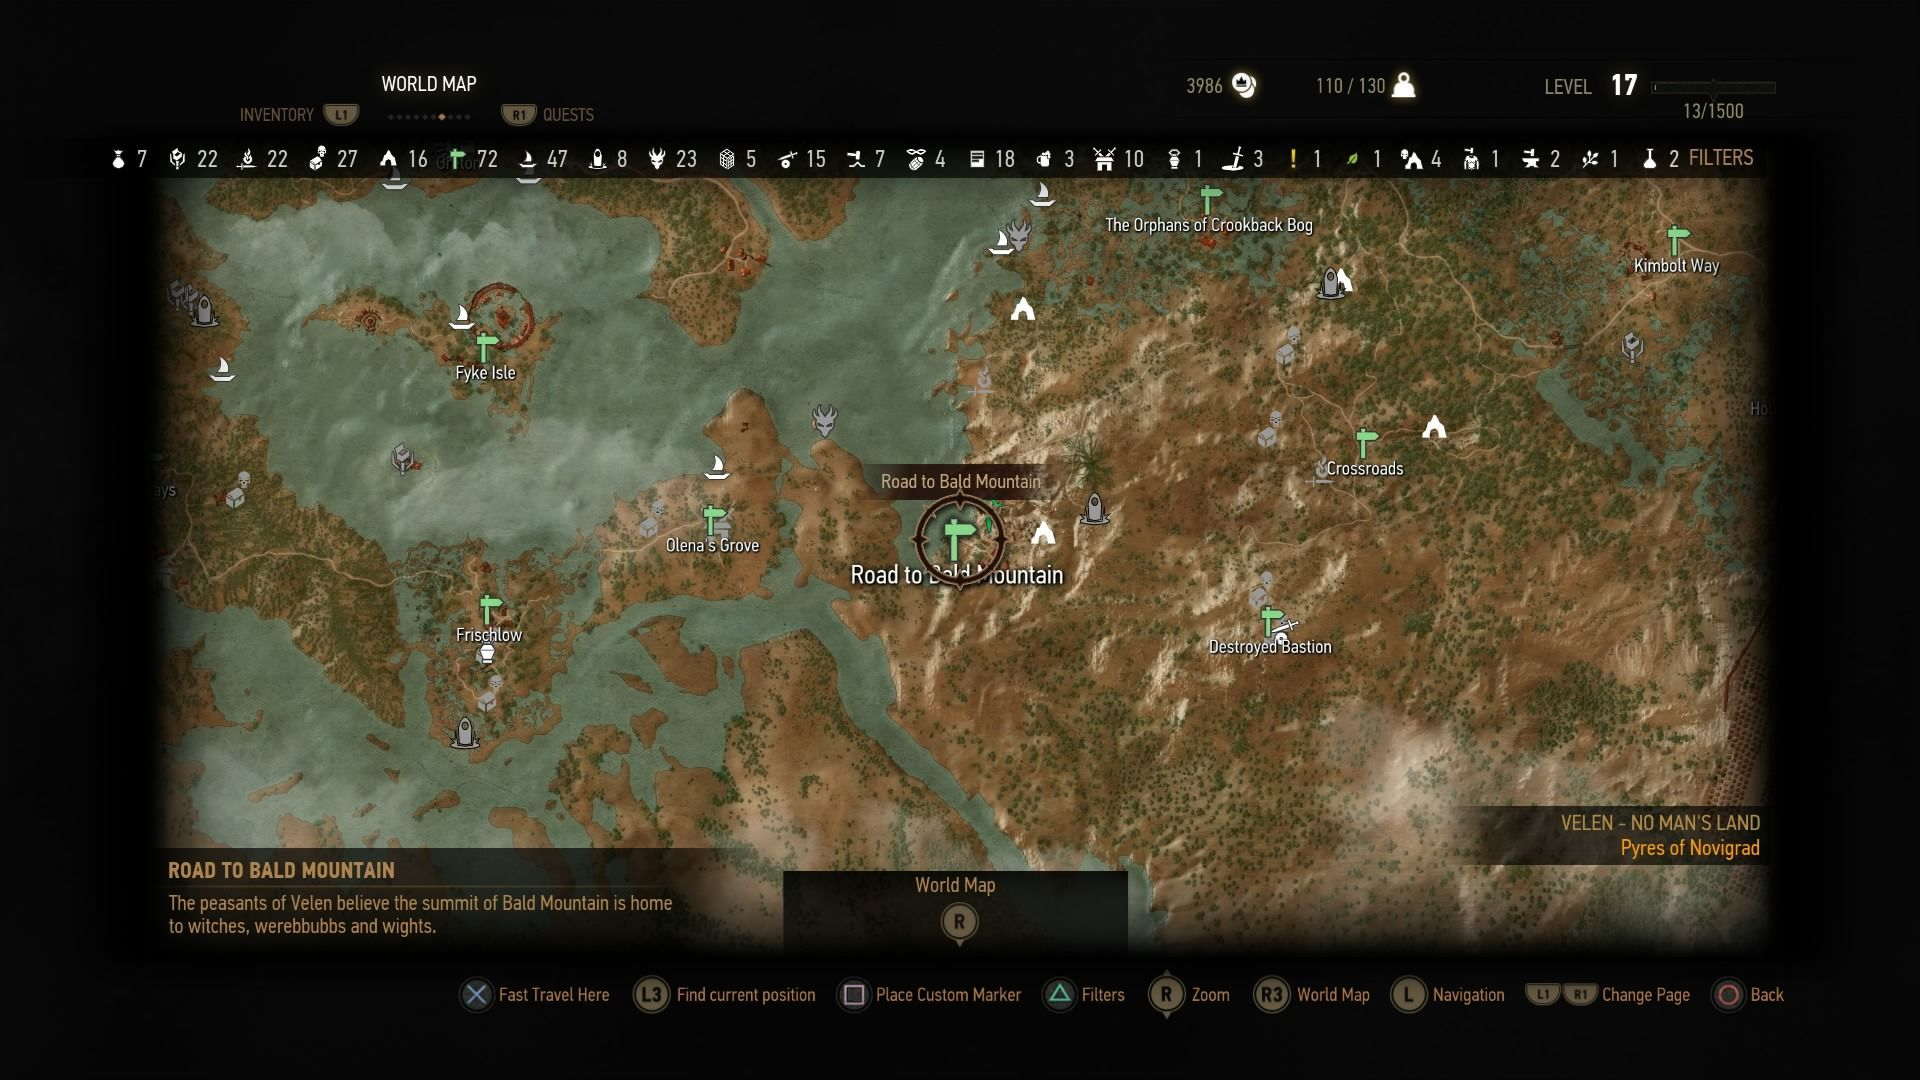 Road To Bald Mountain The Witcher 3 Wiki